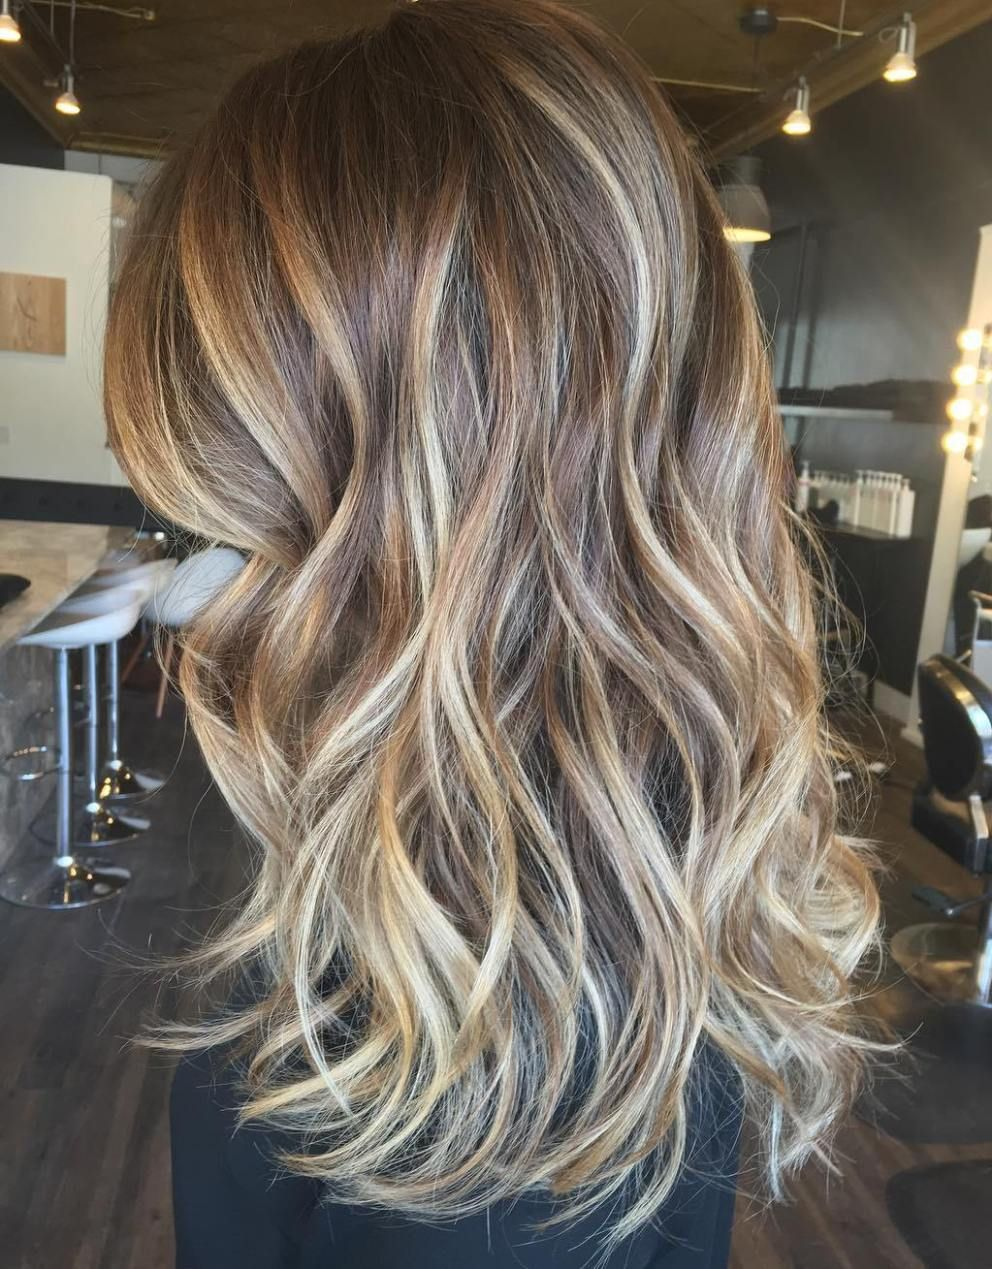 Flattering Balayage Hair Color Ideas for Lovely Locks